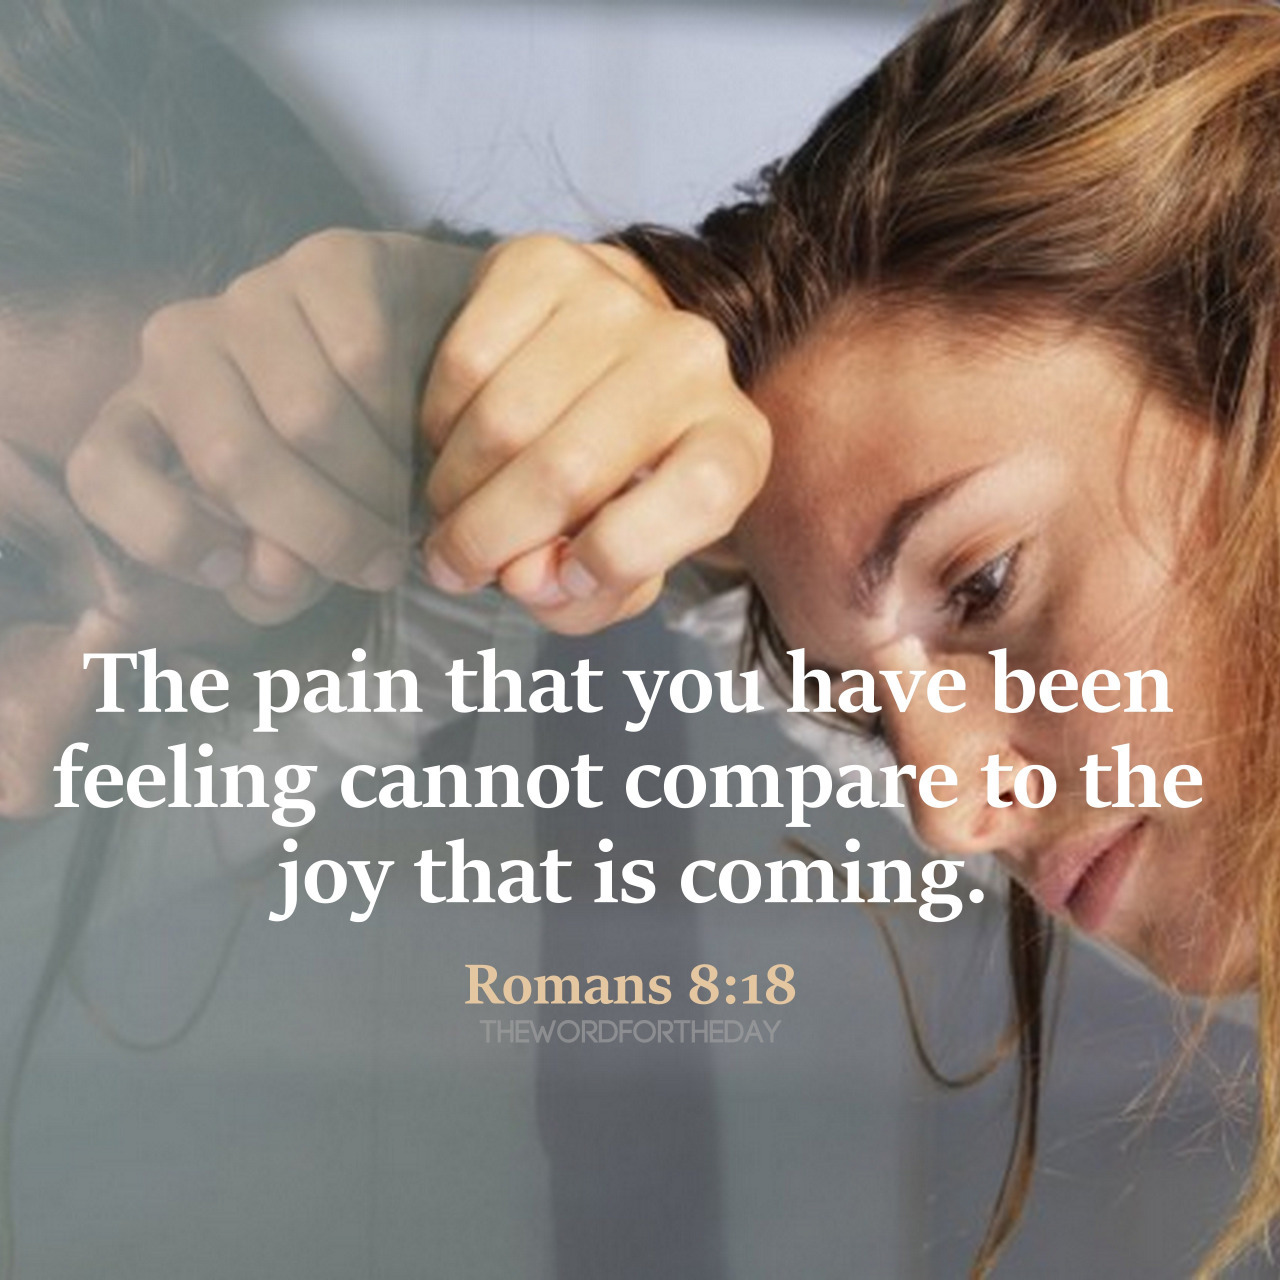 Christian quotes images on Favim.com